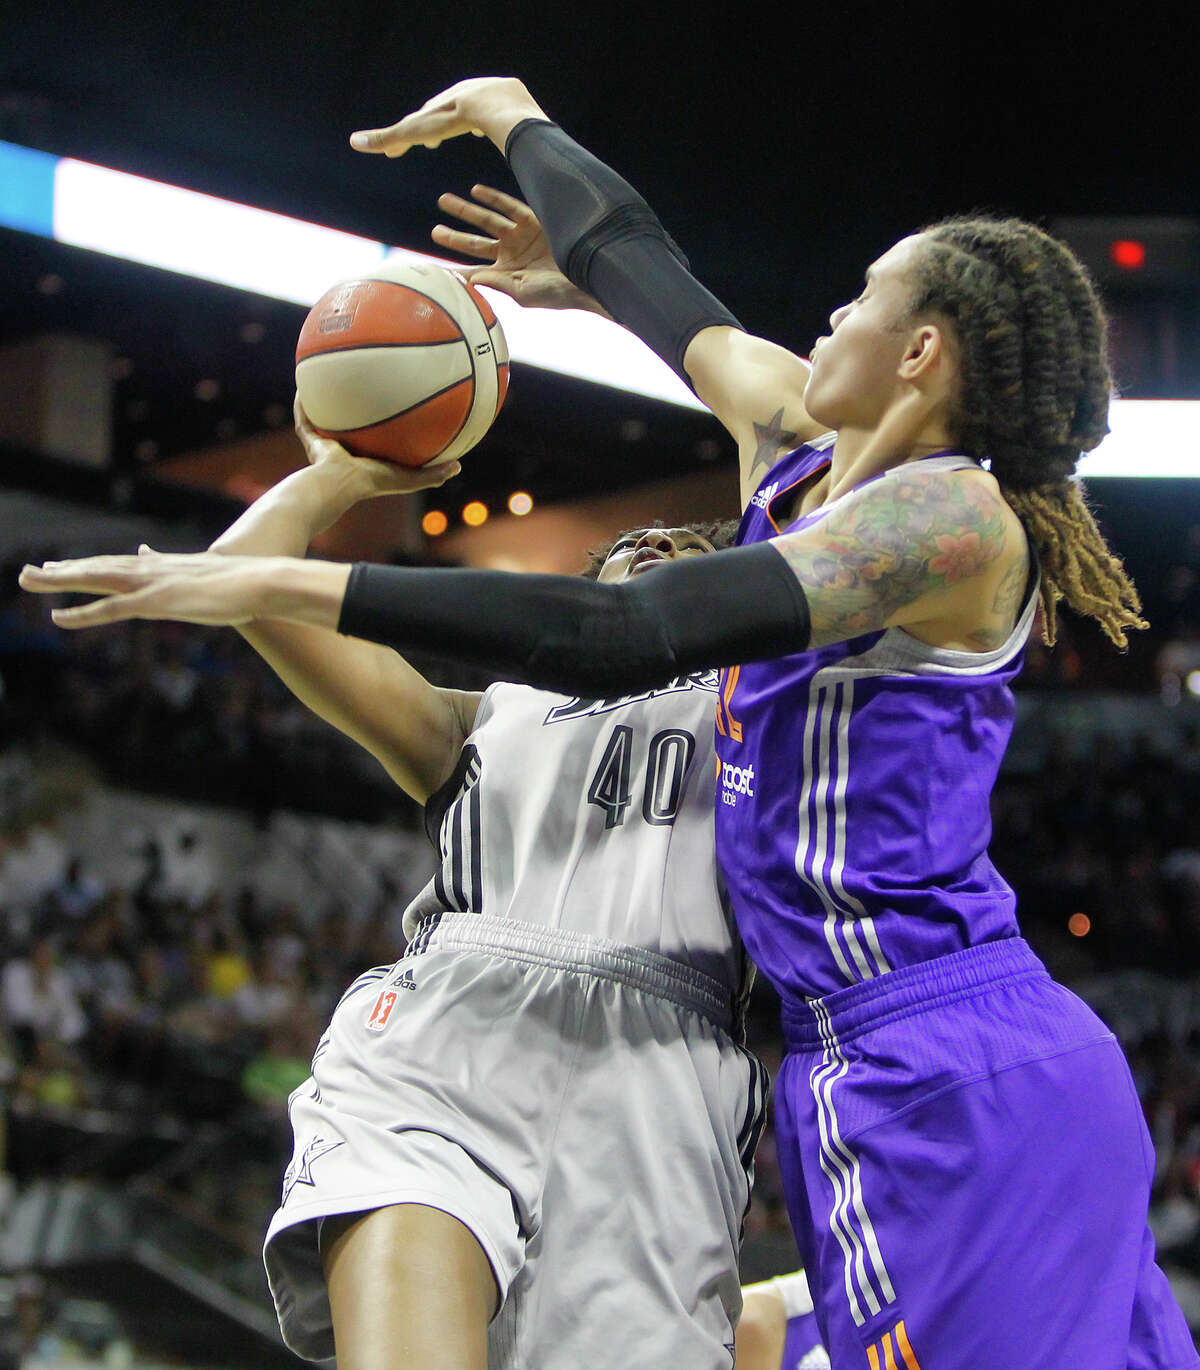 Brittney Griner of Phoenix (right) reaches to block a shot by the Silver Stars' Kayla Alexander during the first half of their game at the AT&T Center on Tuesday, June 25, 2013. The game was former Baylor standout Brittney Griner's first trip to play in her home state. Phoenix won the game 83-77. MARVIN PFEIFFER/ mpfeiffer@express-news.net